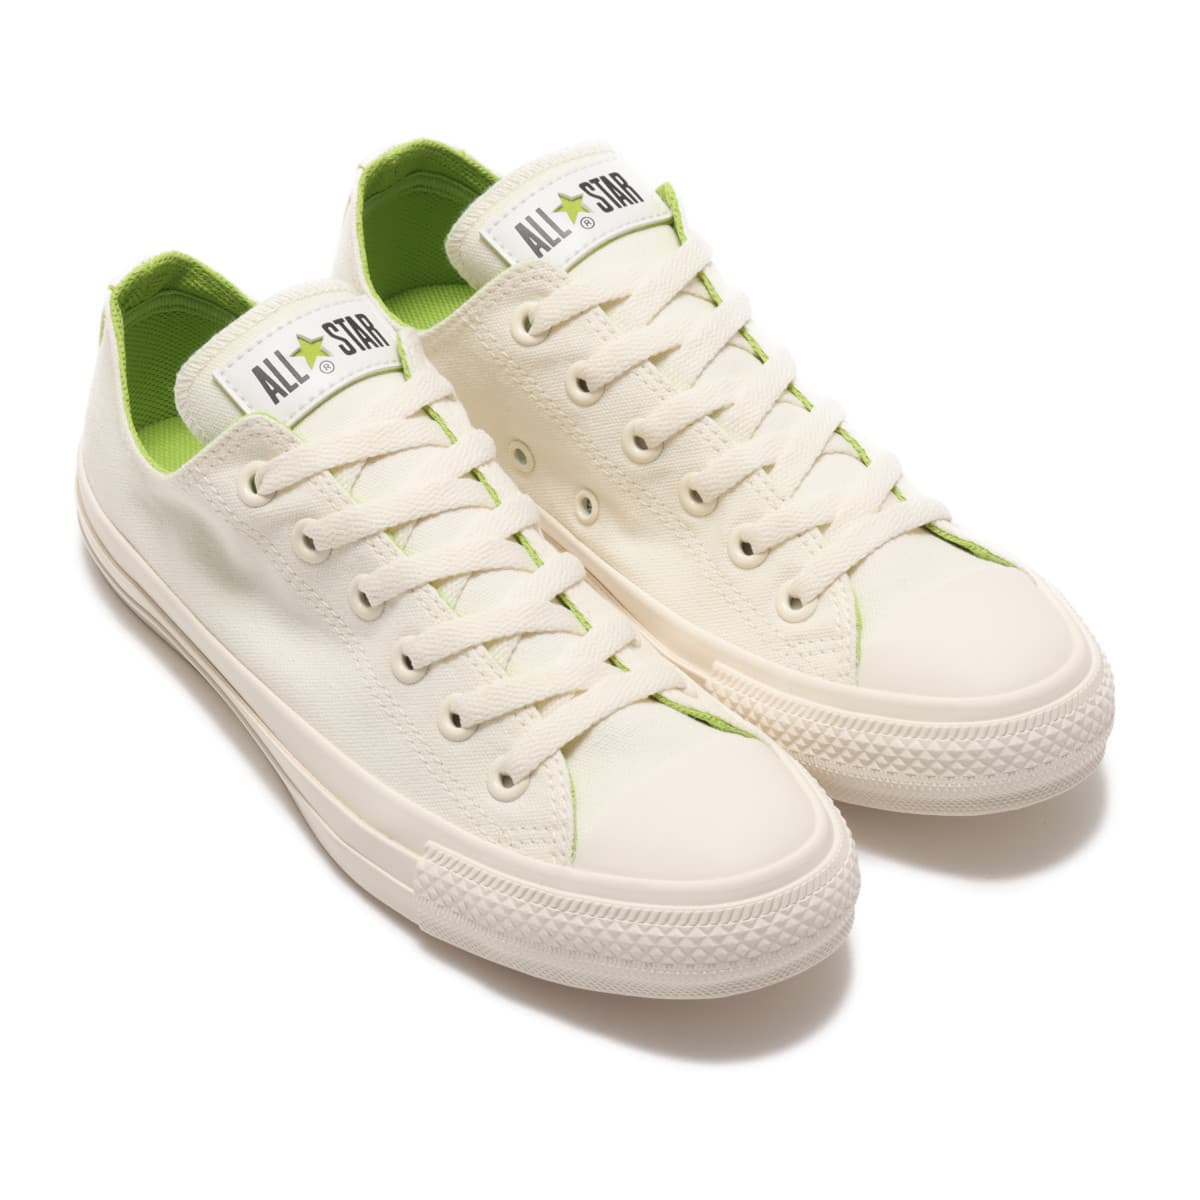 CONVERSE ALL STAR COSMOINWHITE OX WHITE 21SS-I_photo_large